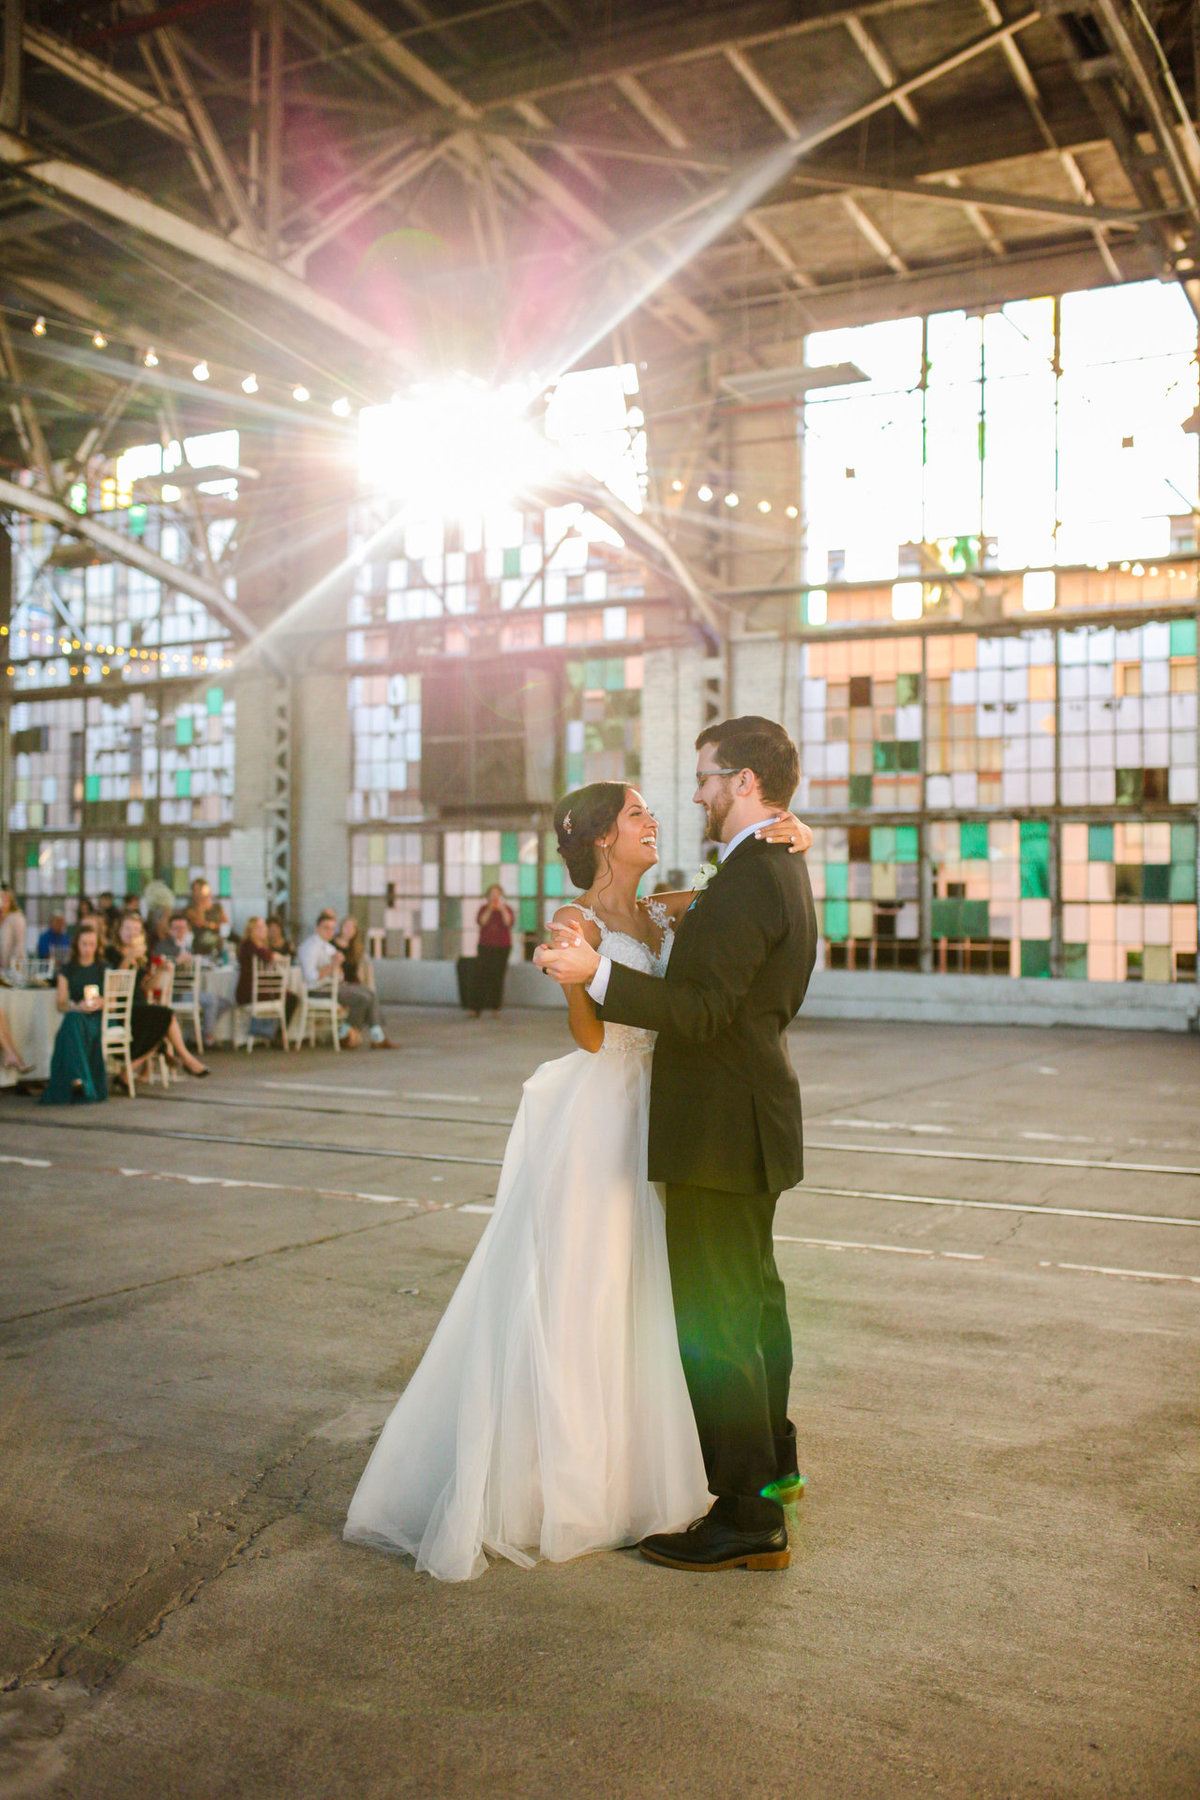 Albuquerque Wedding Photographer_Abq Rail Yards Reception_www.tylerbrooke.com_044